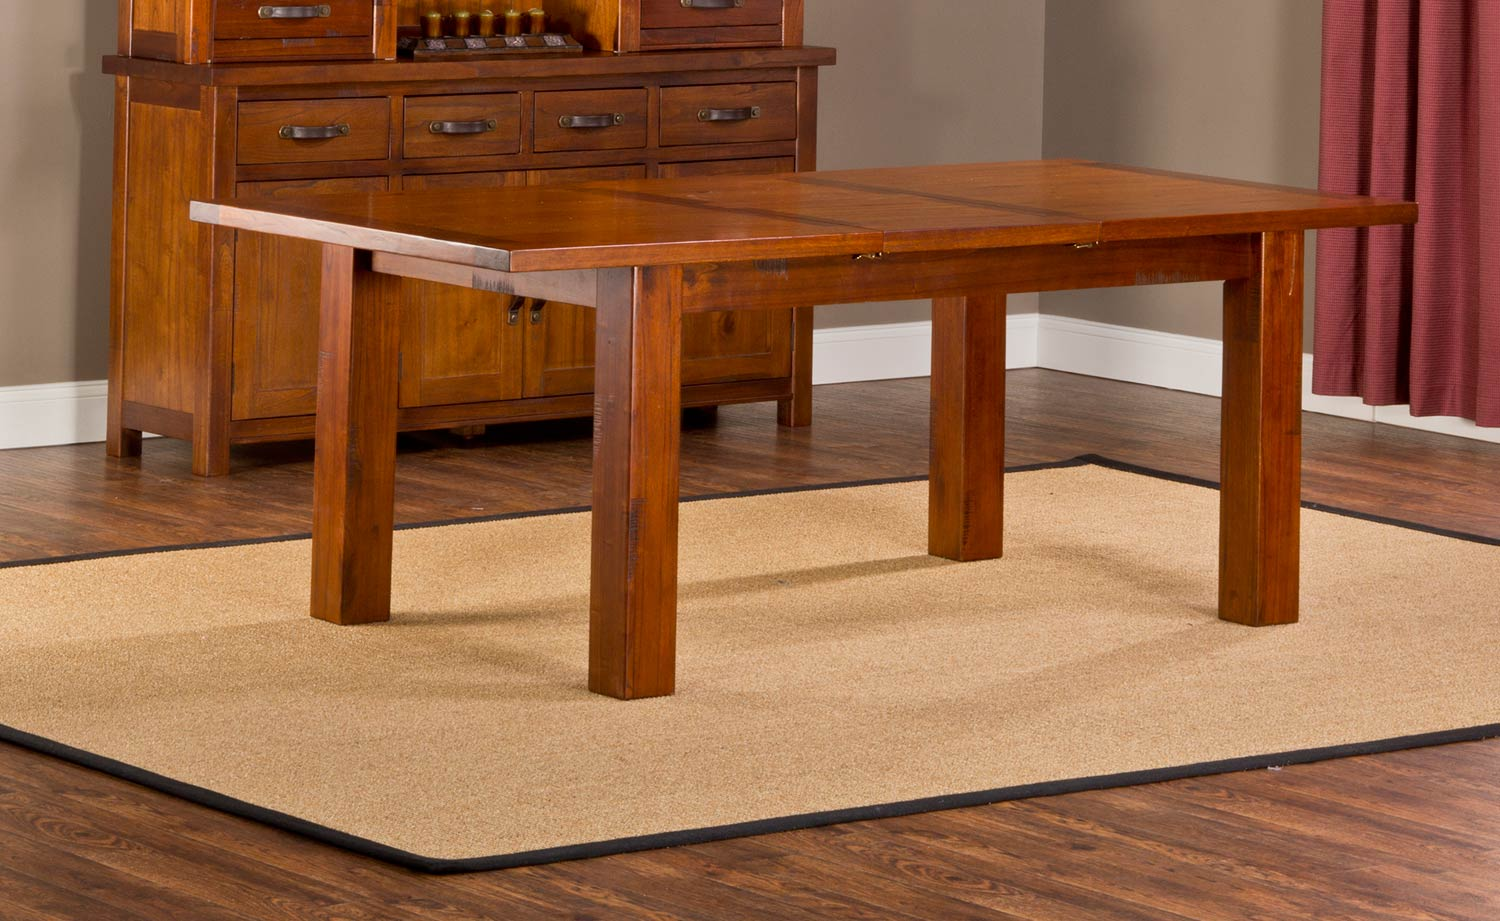 Hillsdale Outback Dining Table - Distressed Chestnut